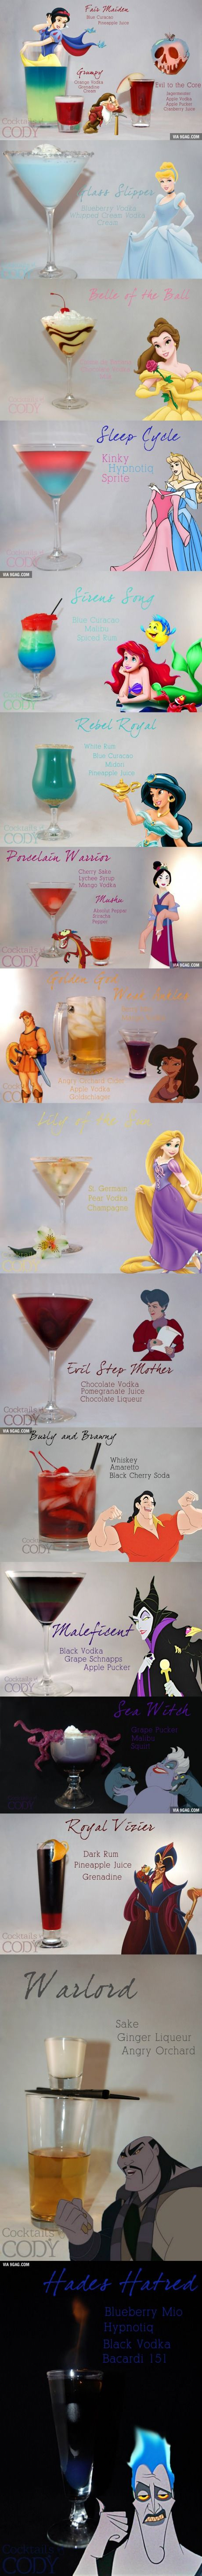 29 Disney Themed Cocktails You Will Want To Try